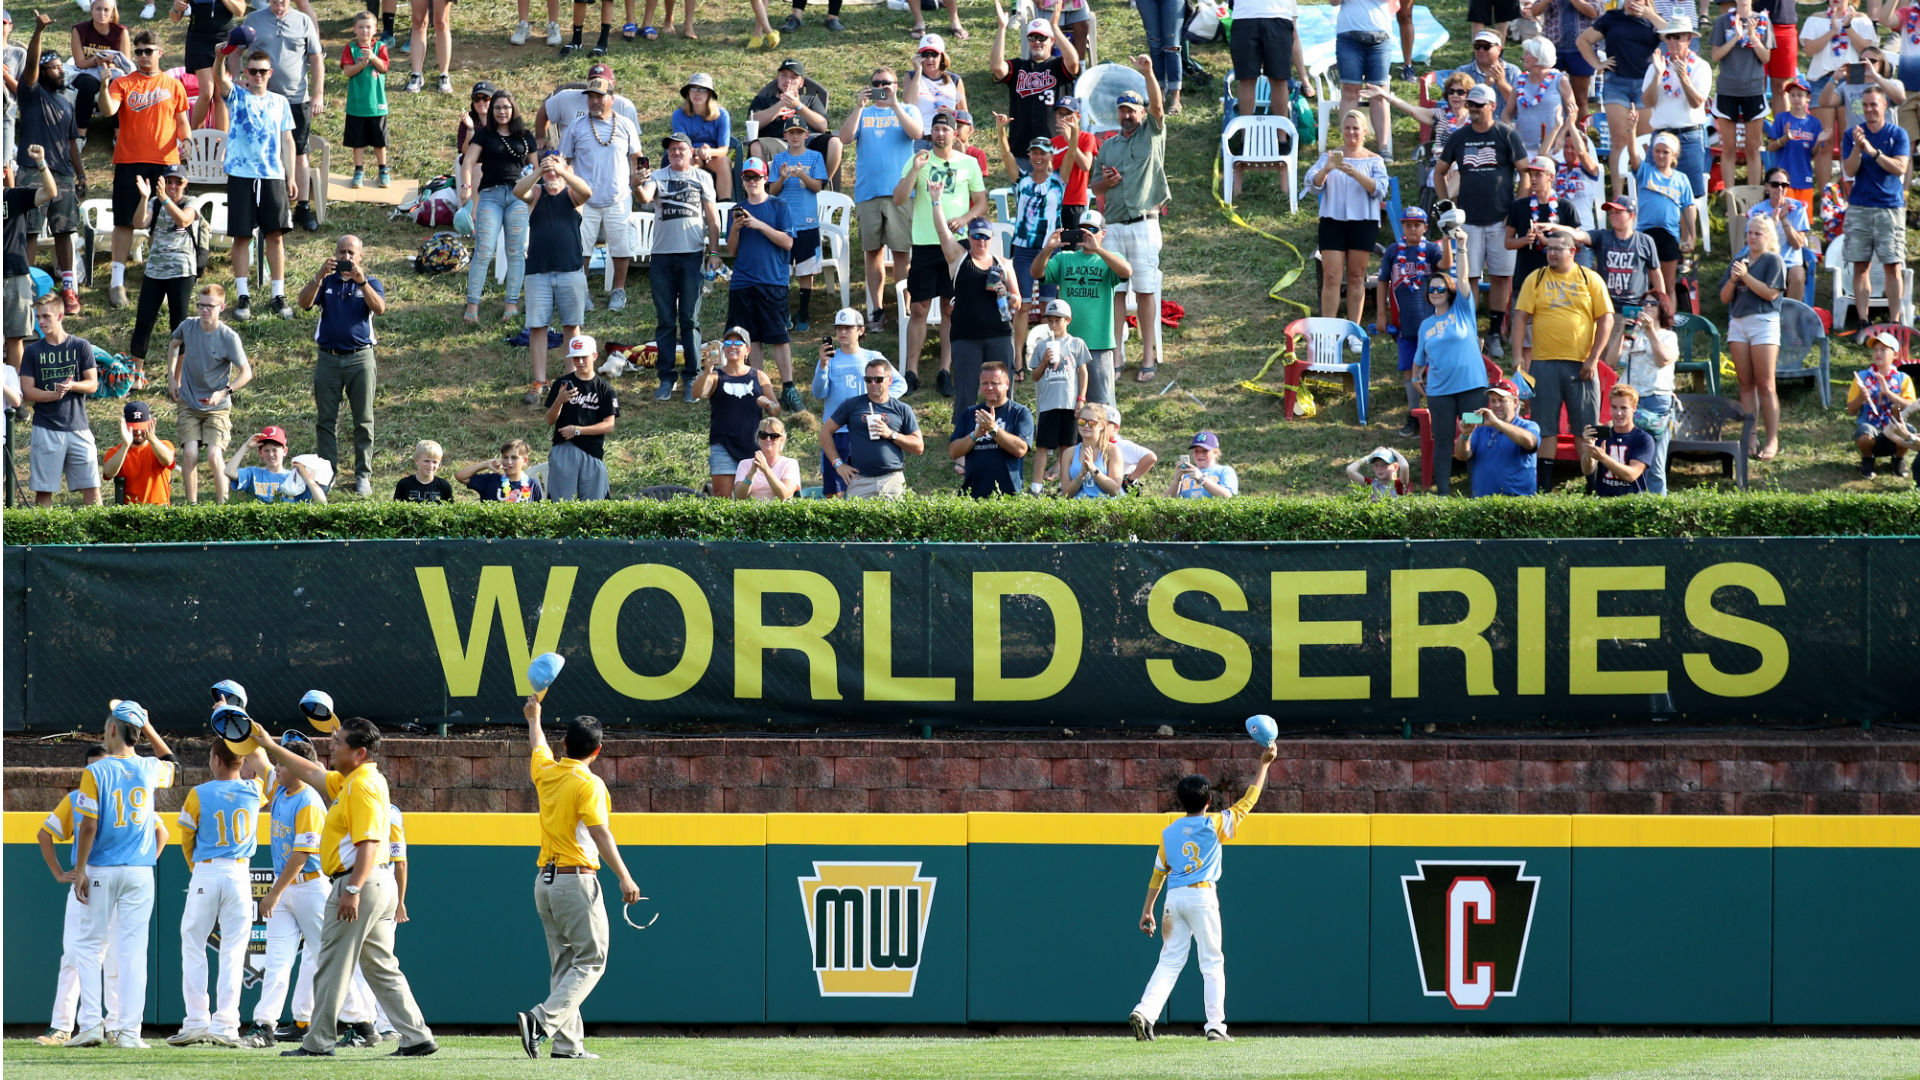 Little League World Series 2018: Bracket, scores, schedule